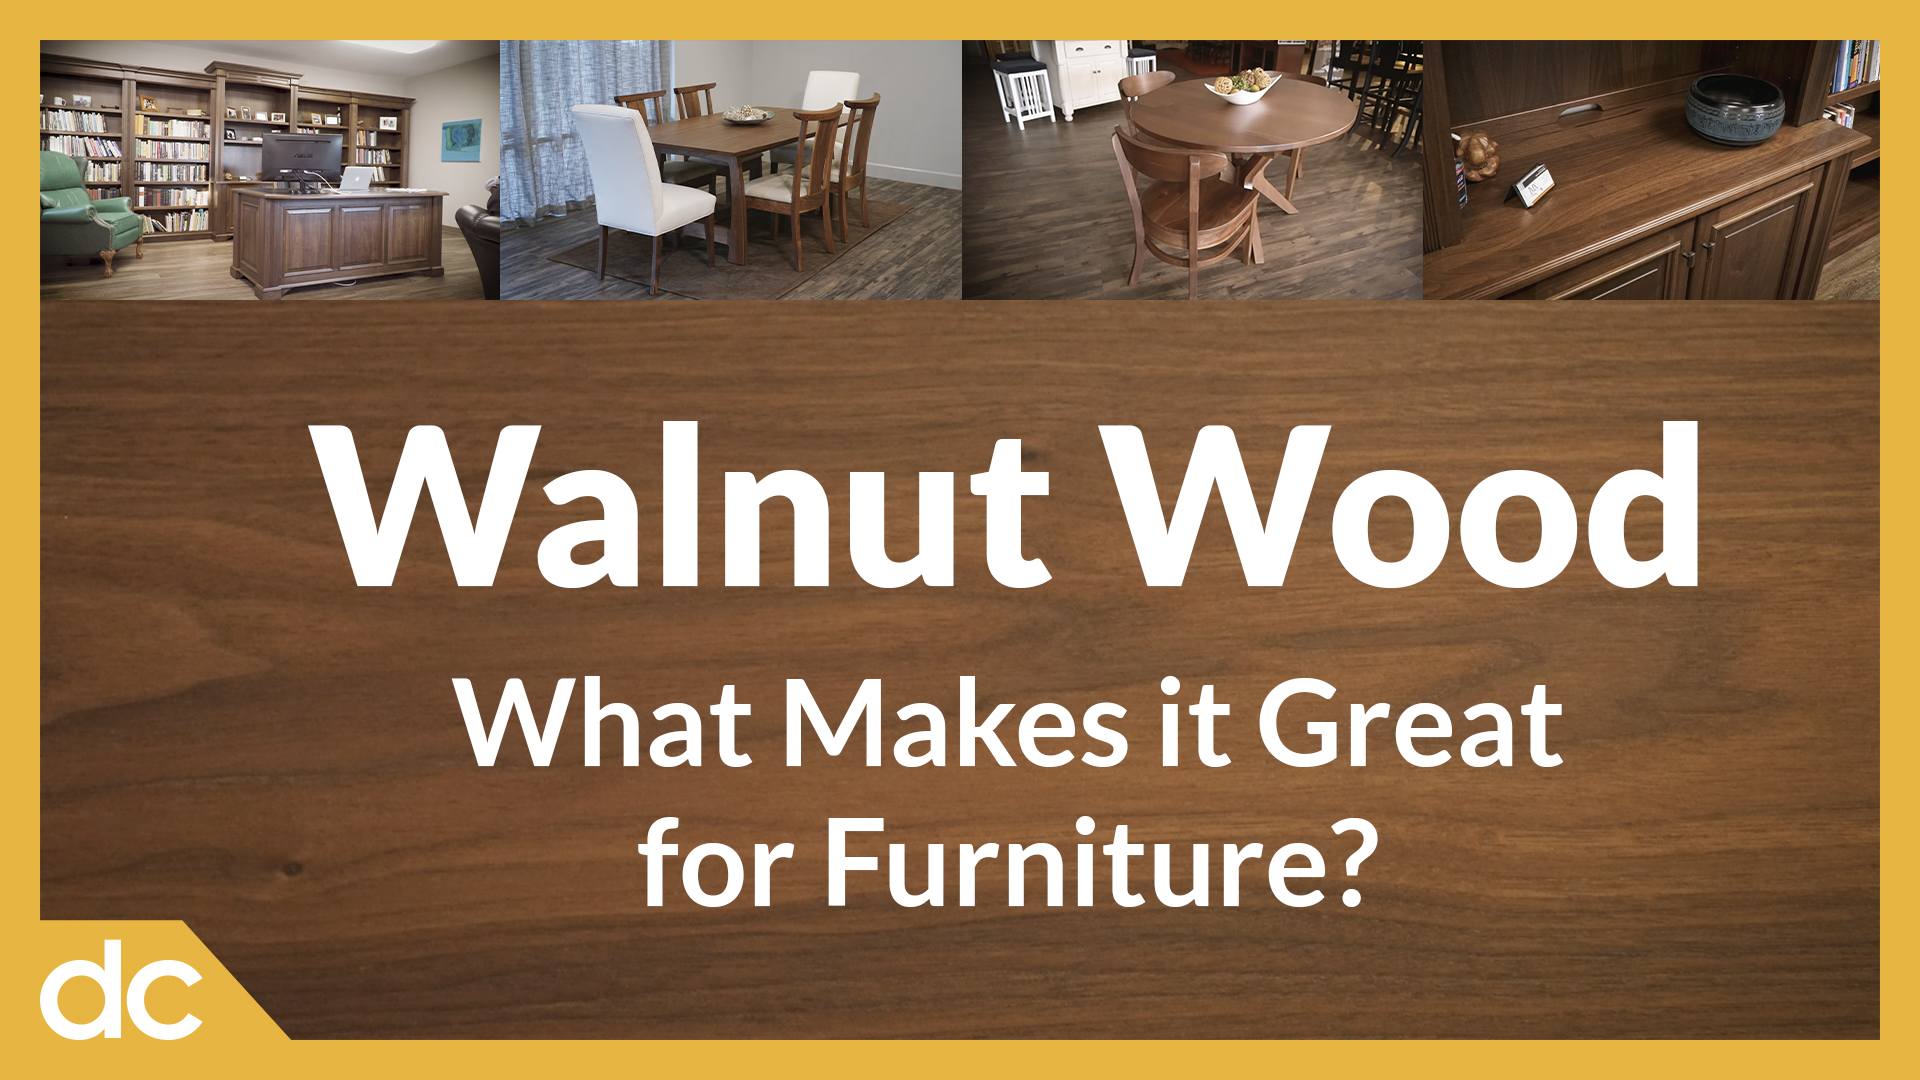 Video Title Image: Walnut Wood: What Makes it Great for Furniture